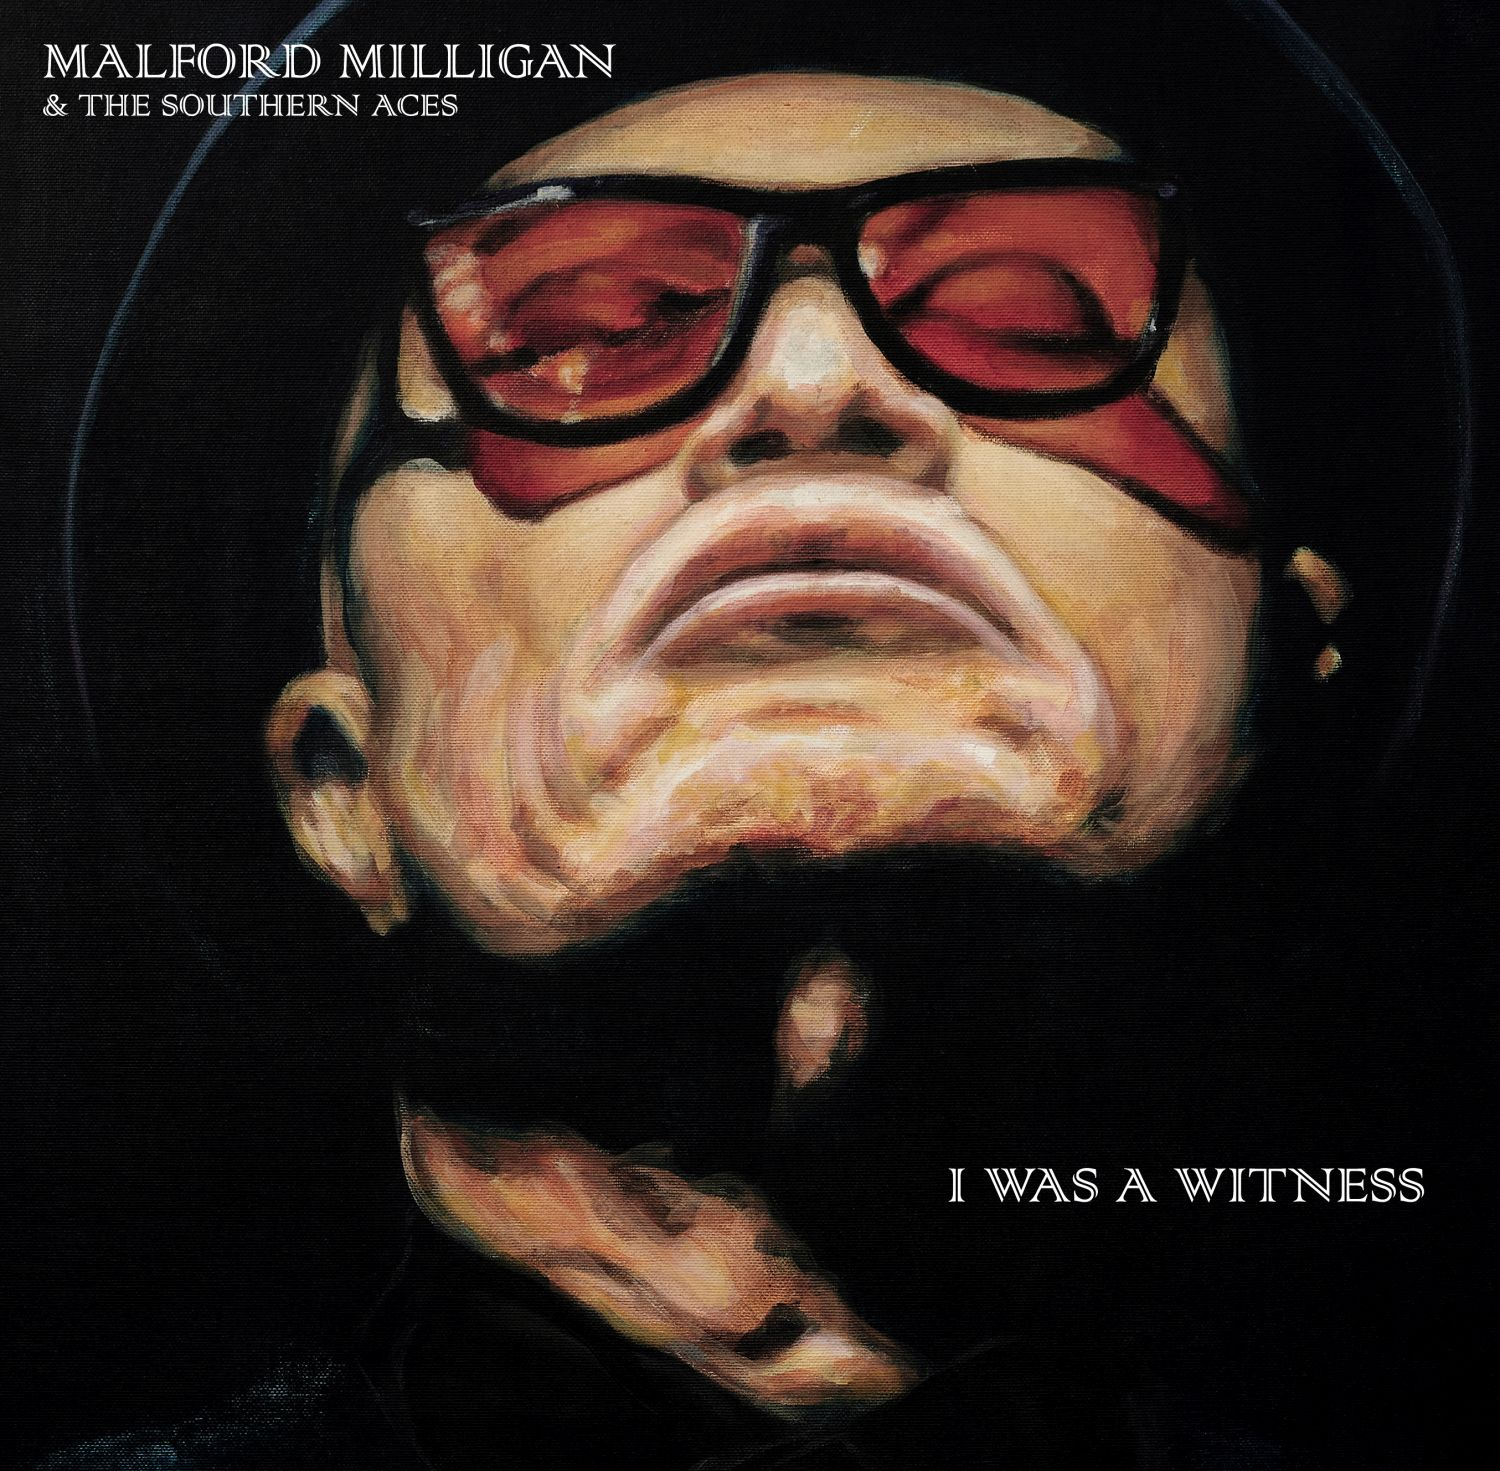 Malford Milligan & The Southern Aces - I Was A Witness